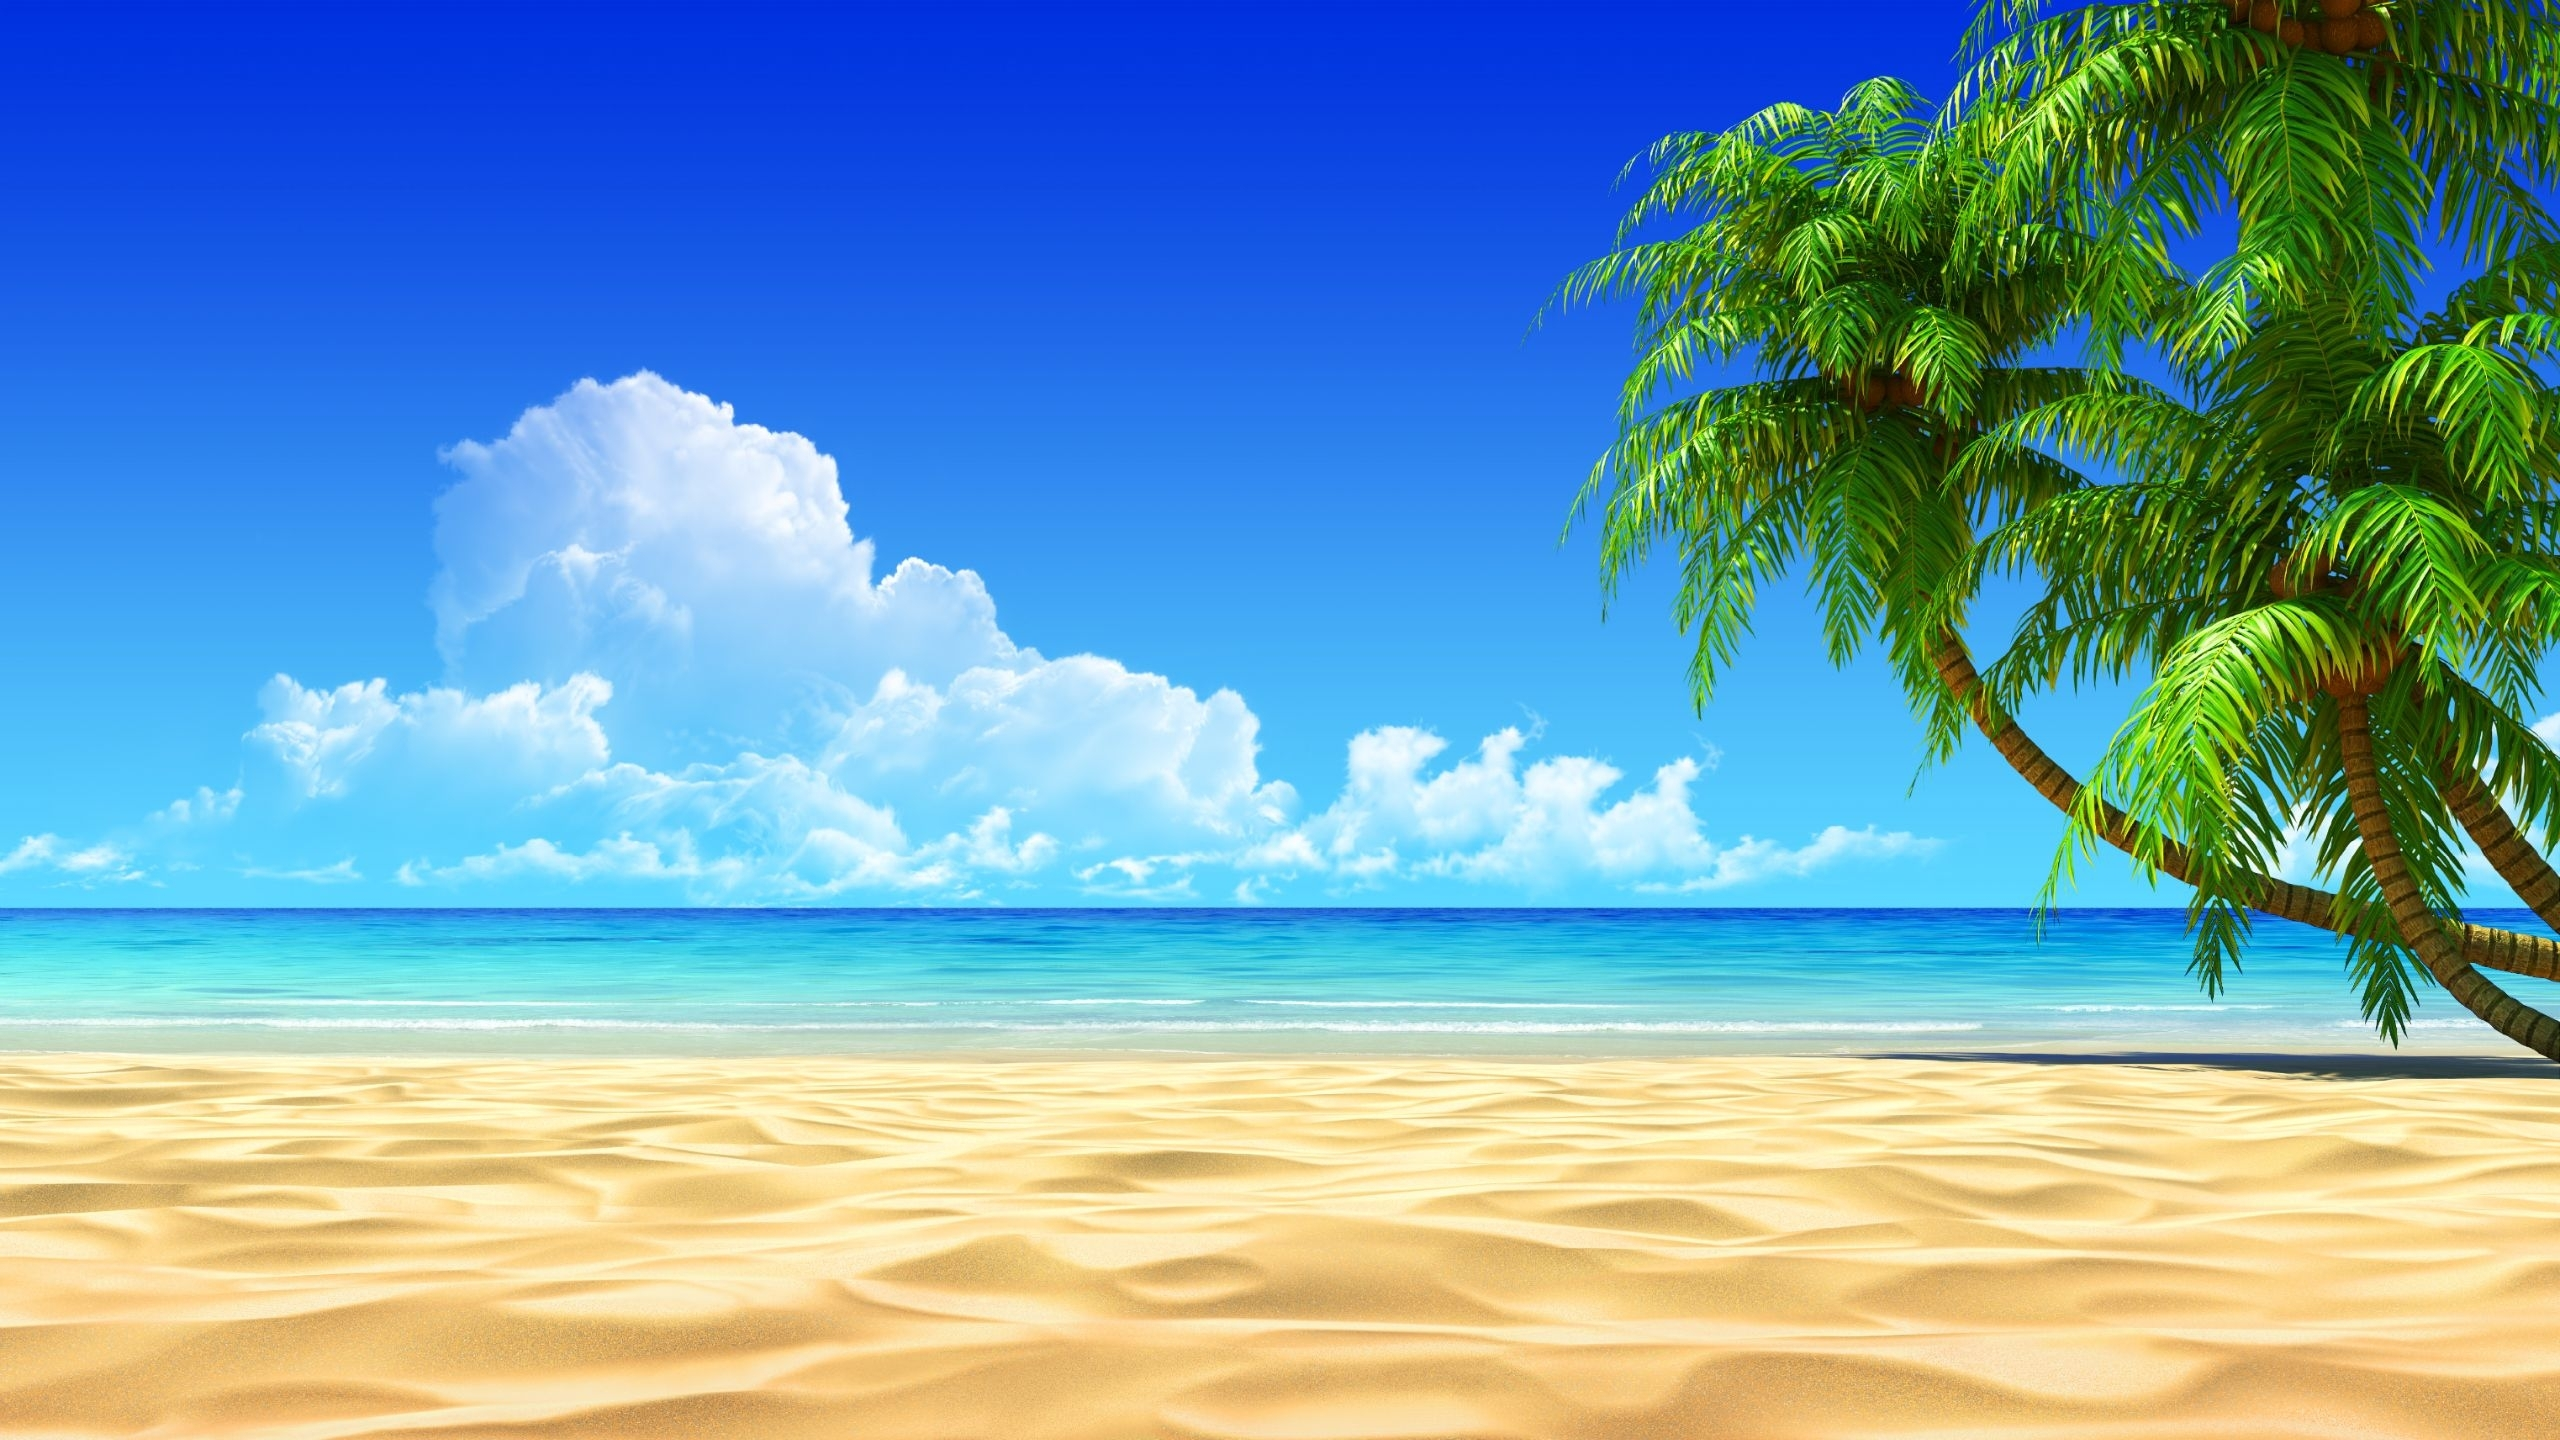 10 Top Beach Palm Tree Background FULL HD 1920×1080 For PC Background